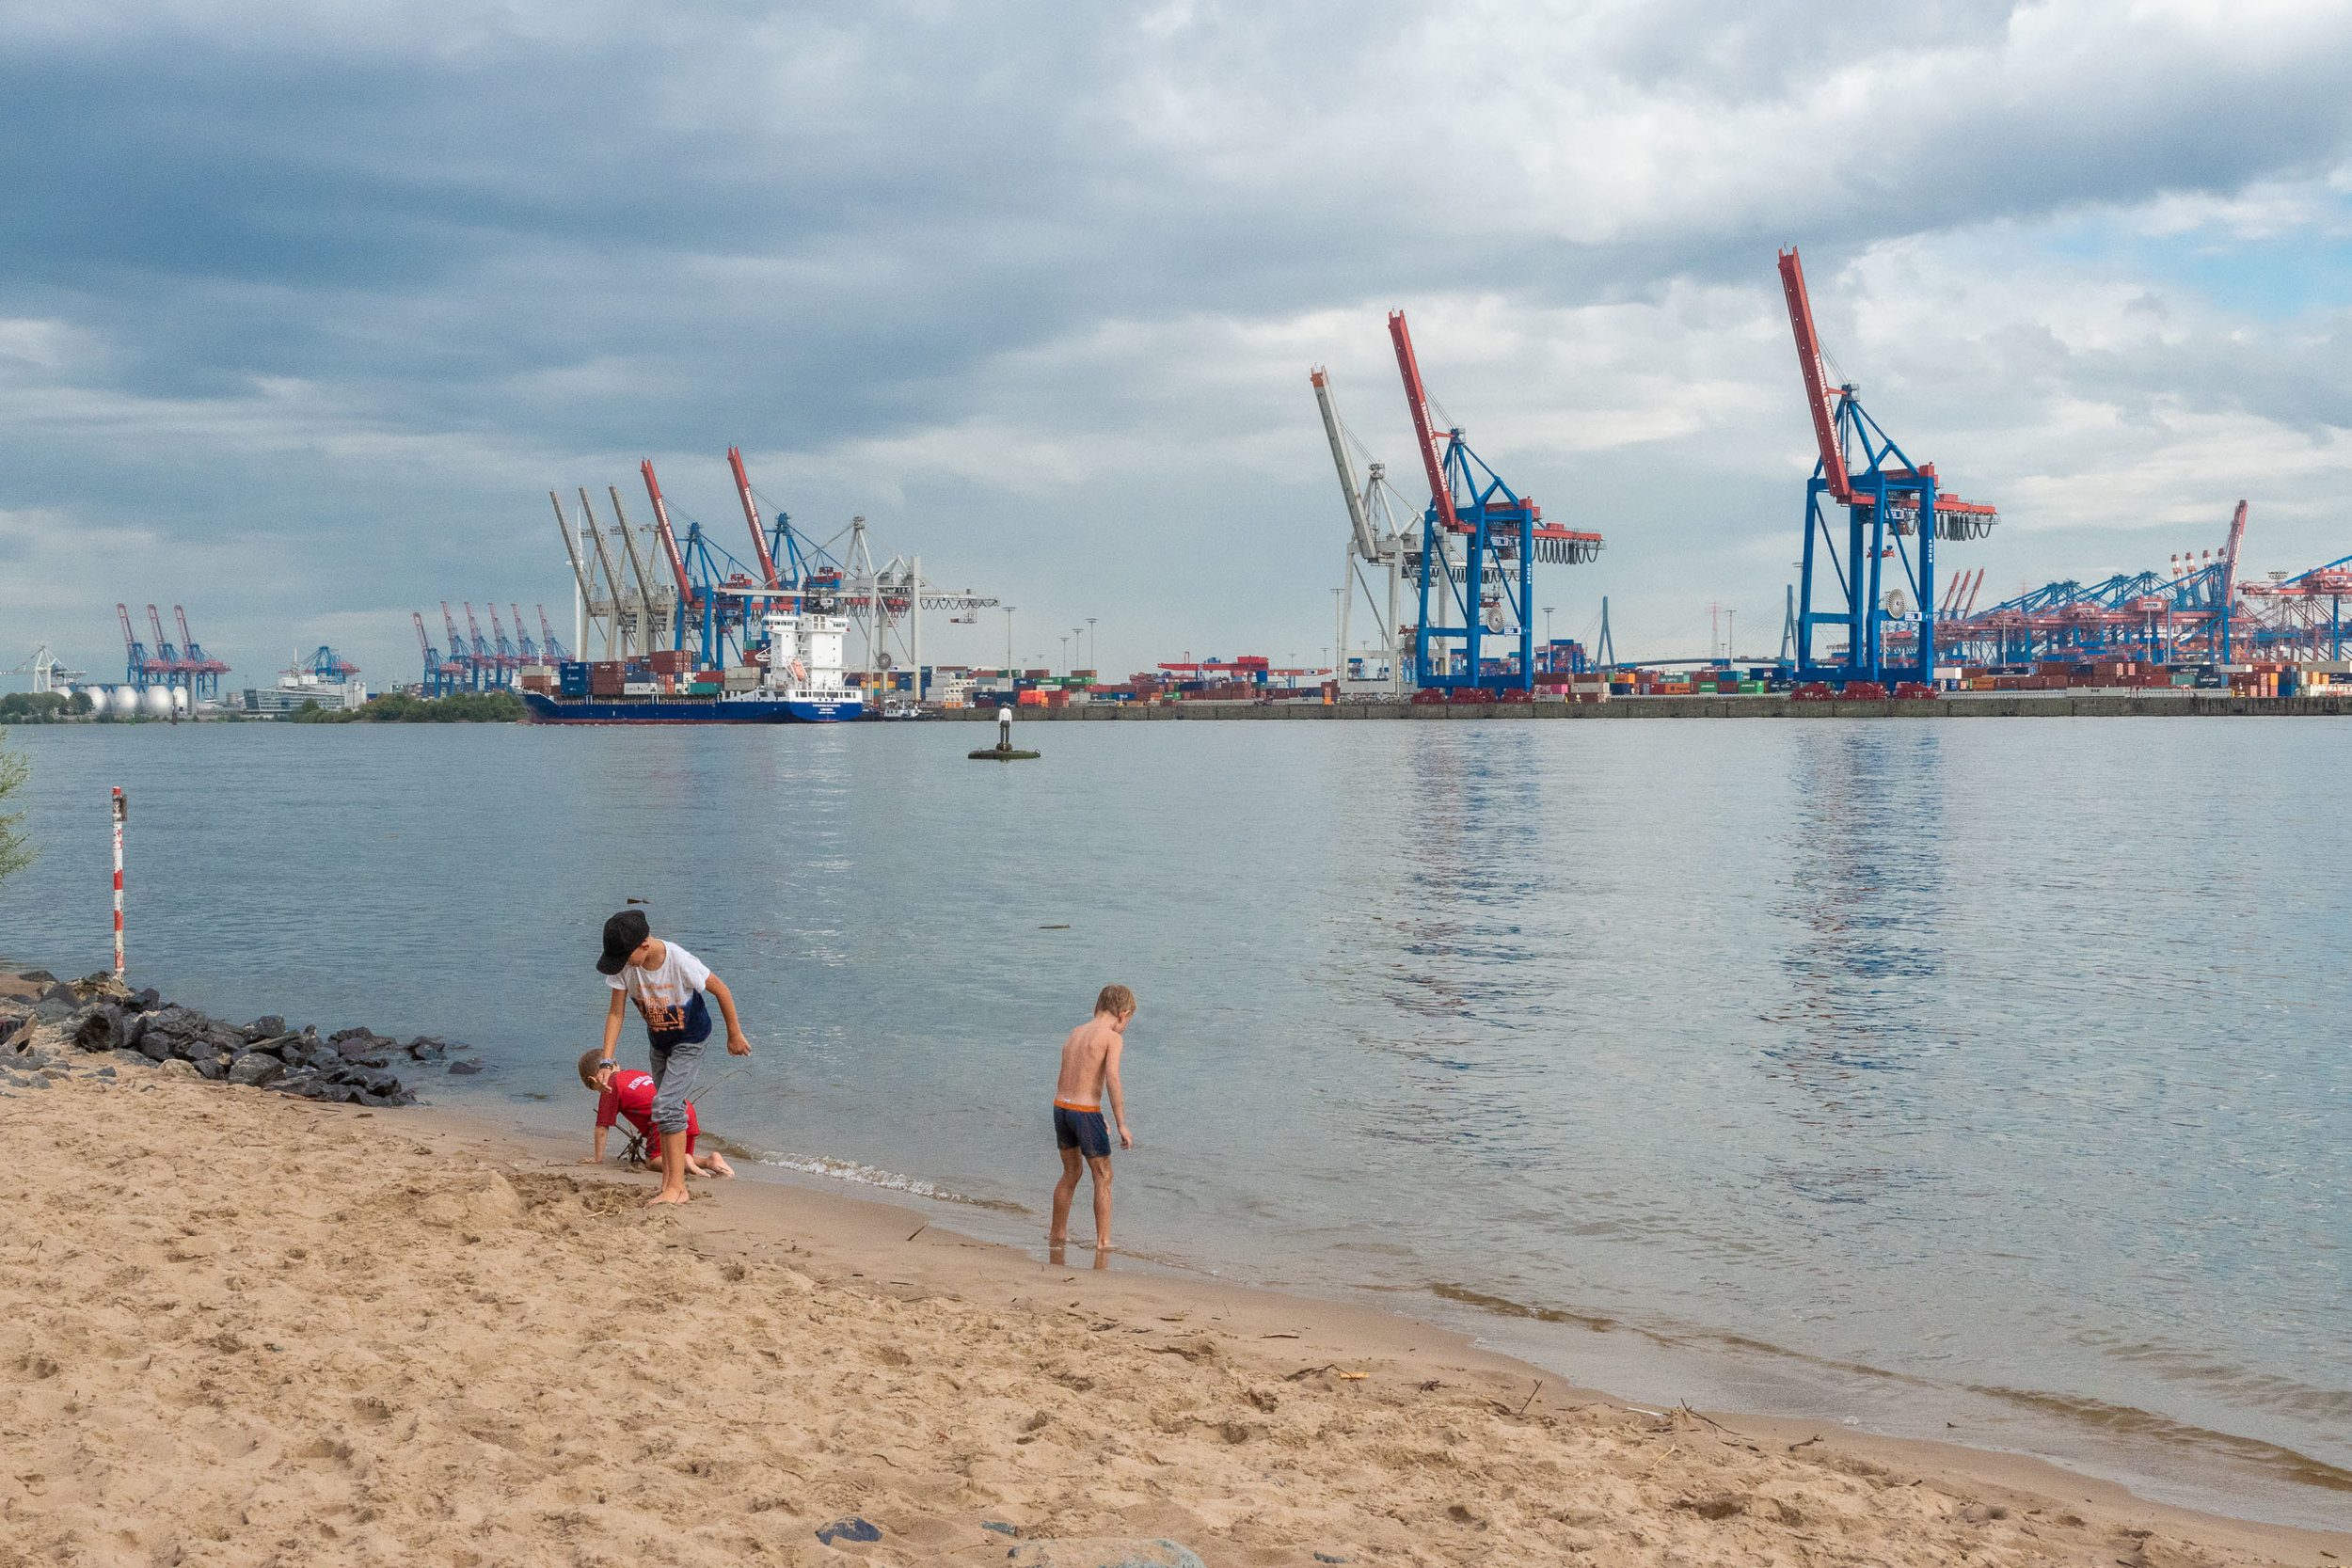 The river Elbe, the beach and the harbor.